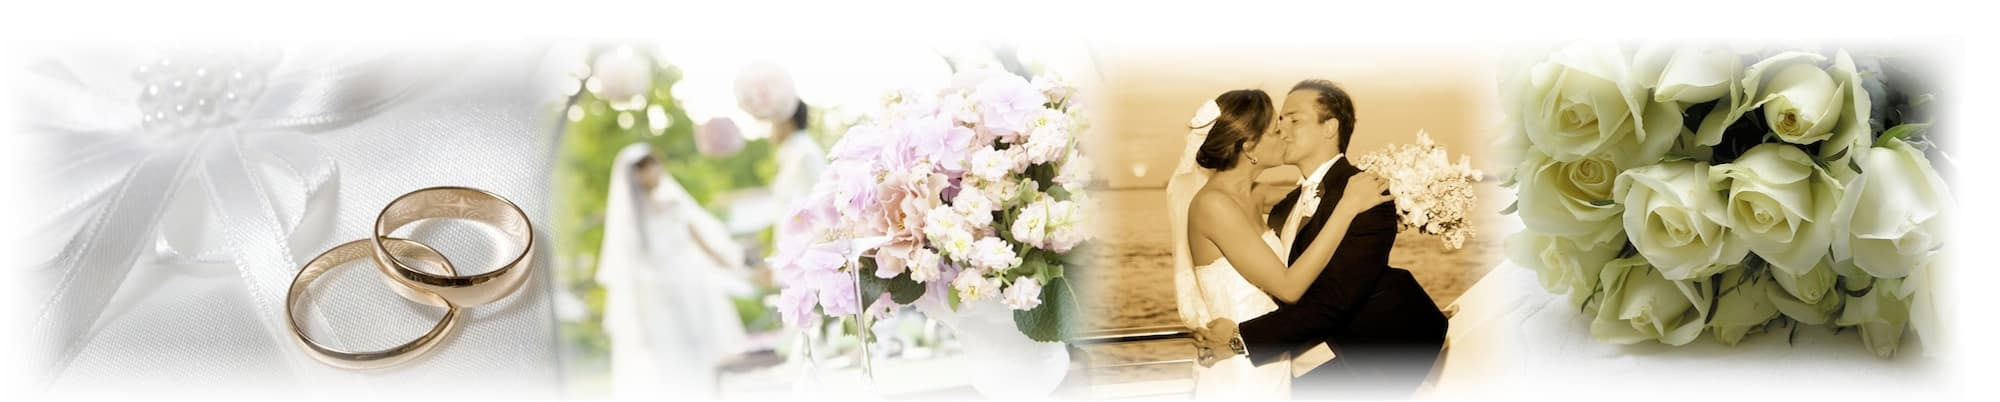 Matrimonio Musica - Header small